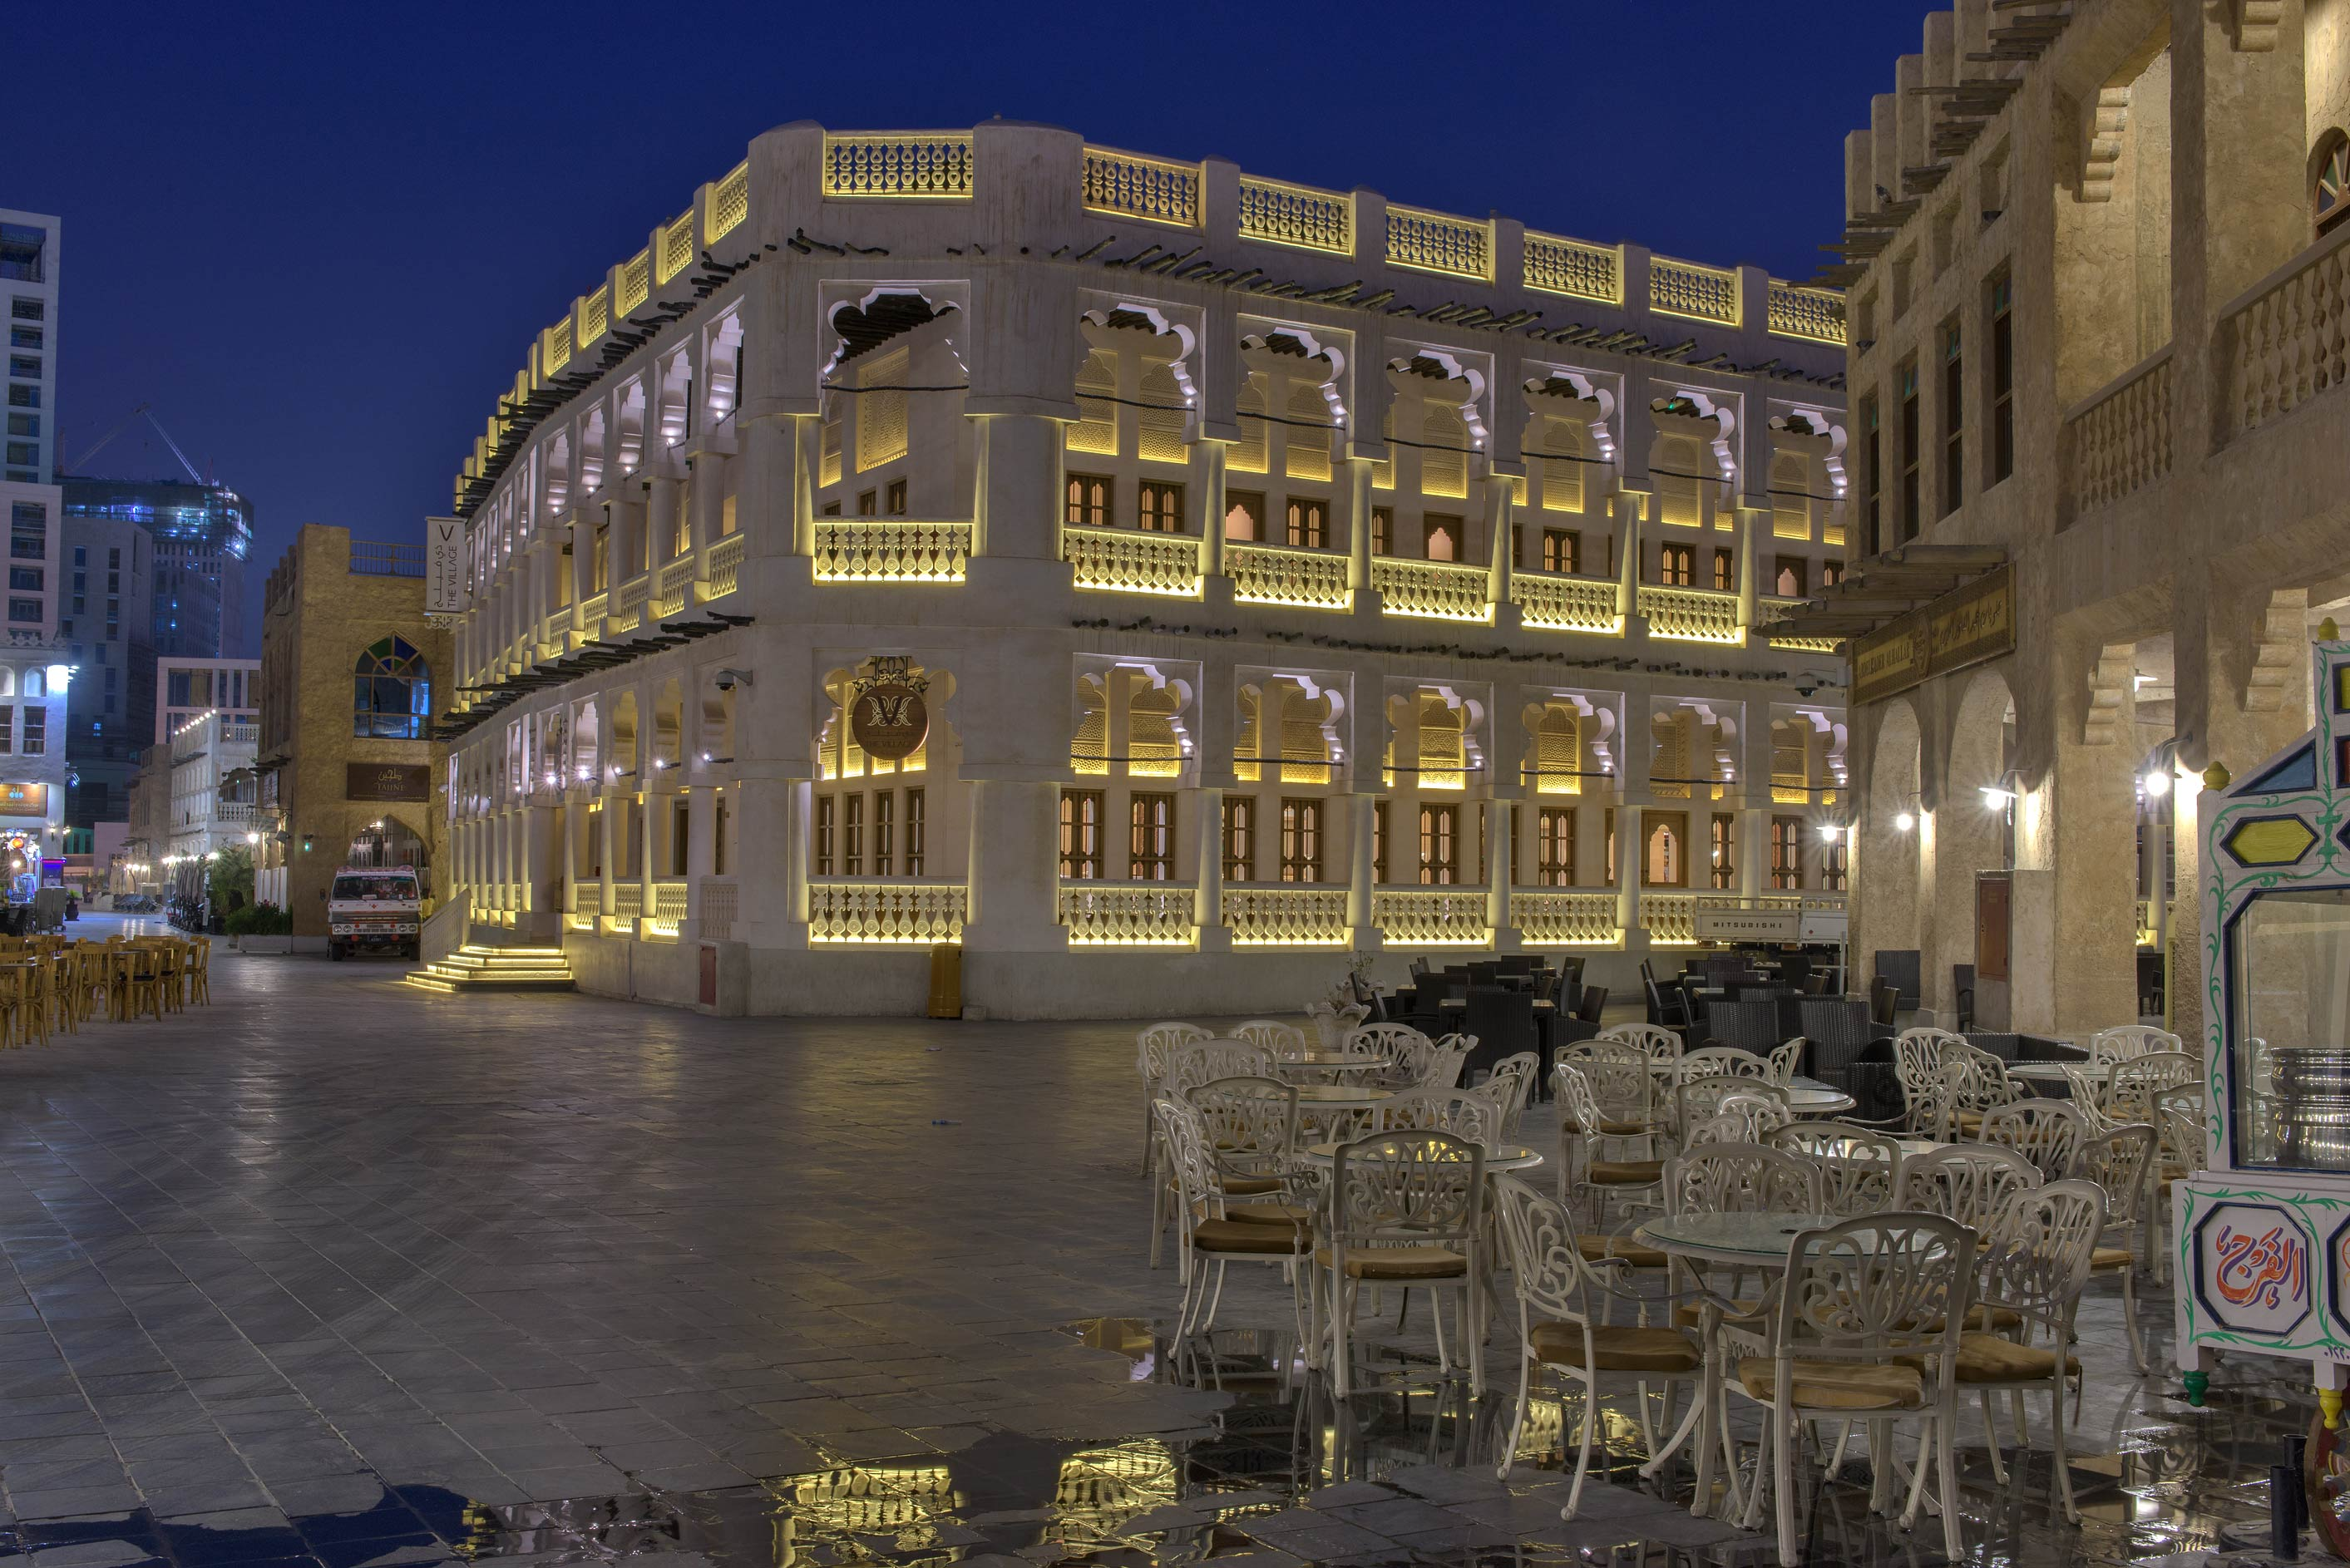 The Village restaurant in Souq Waqif. Doha, Qatar